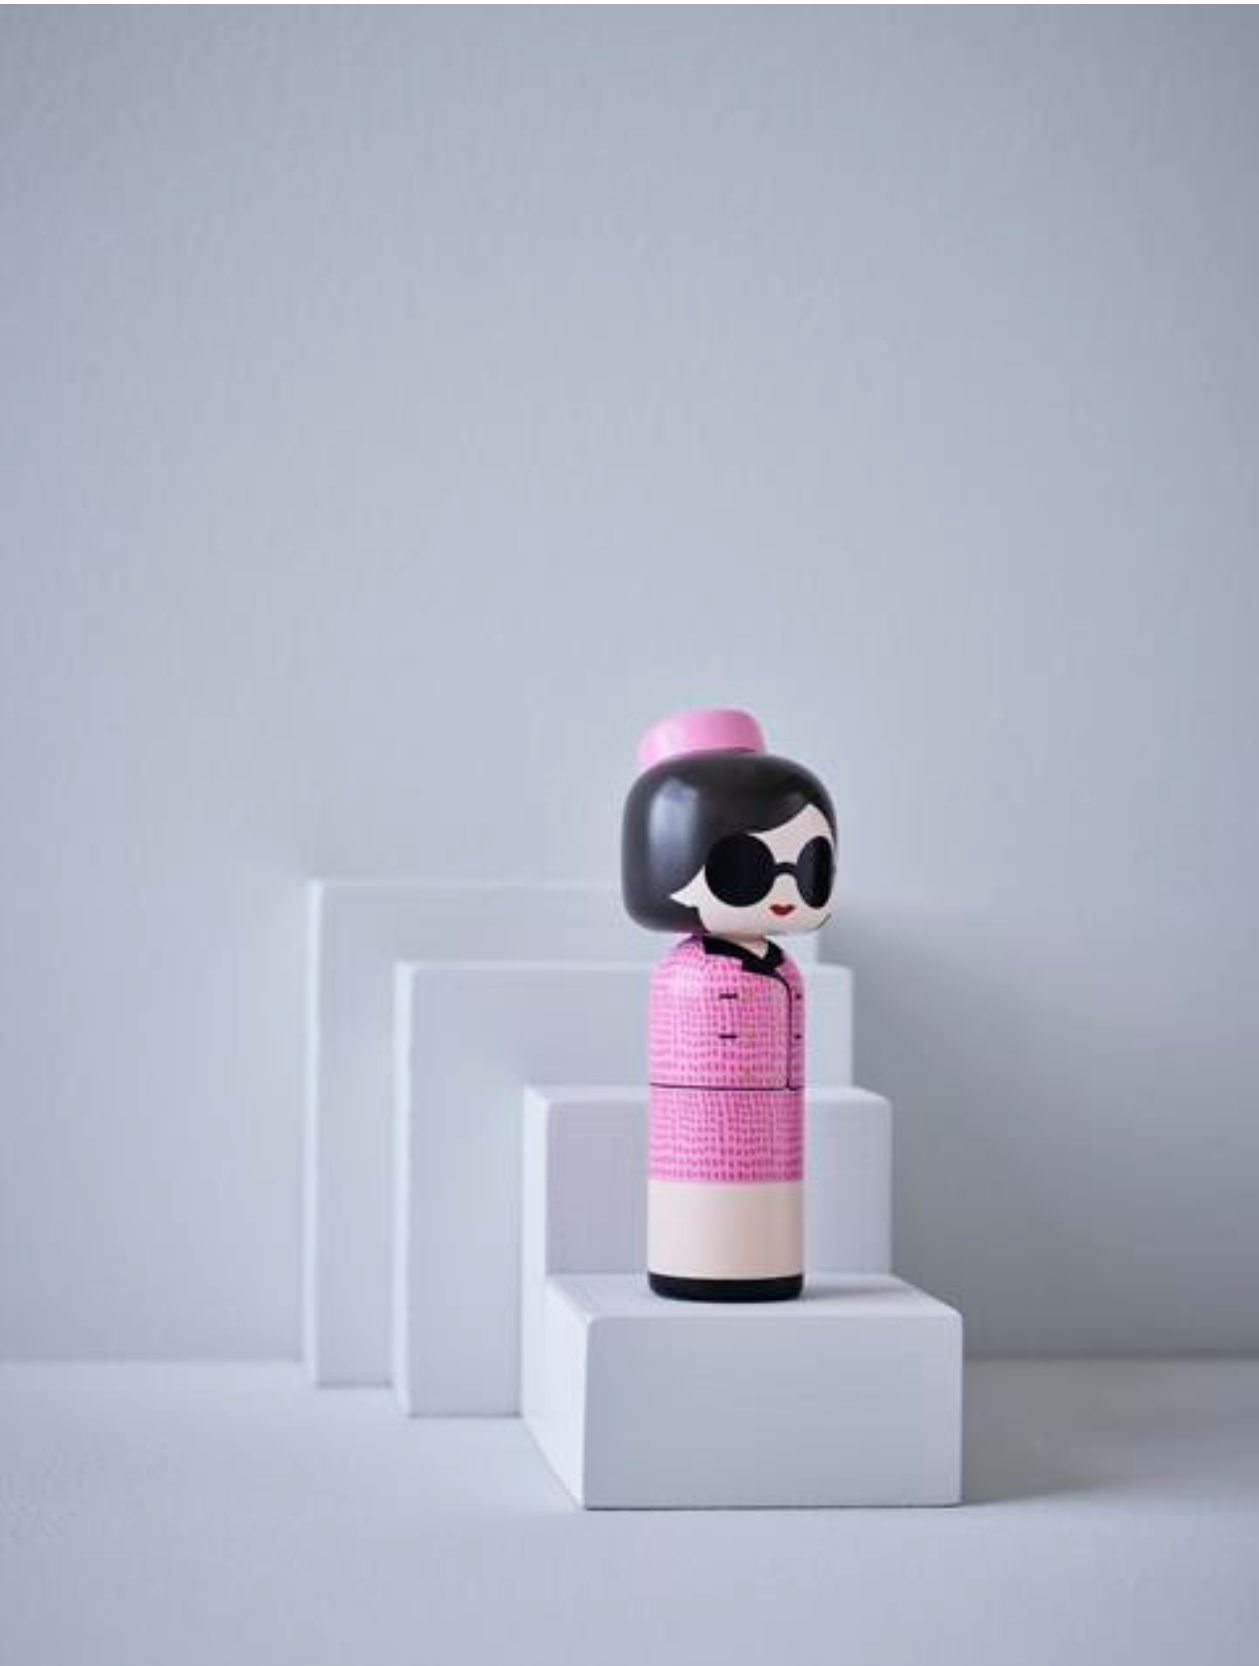 Kokeshi Doll by Sketch.Inc for Lucie Kaas Jackie